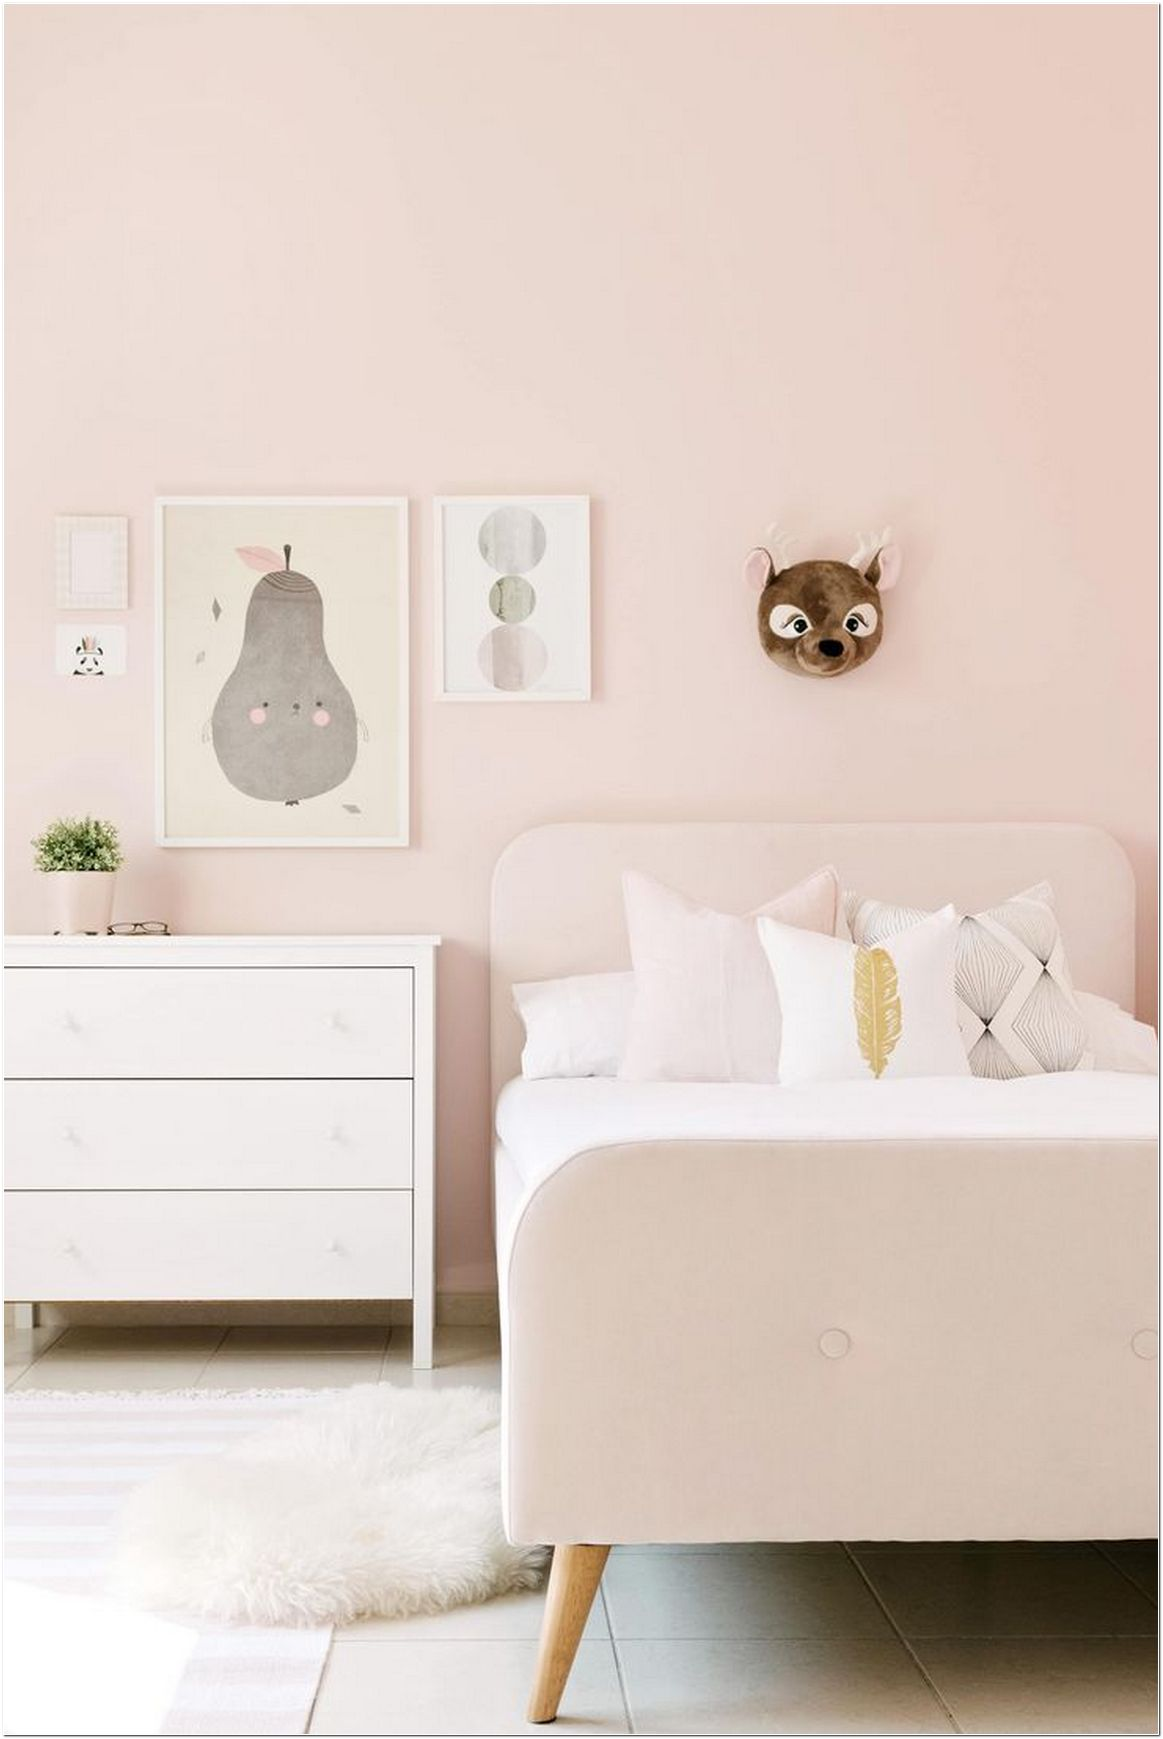 77 Blush Pink Bedroom Wall Decor Ideas That Aren T Too Girly Myhomeorganic